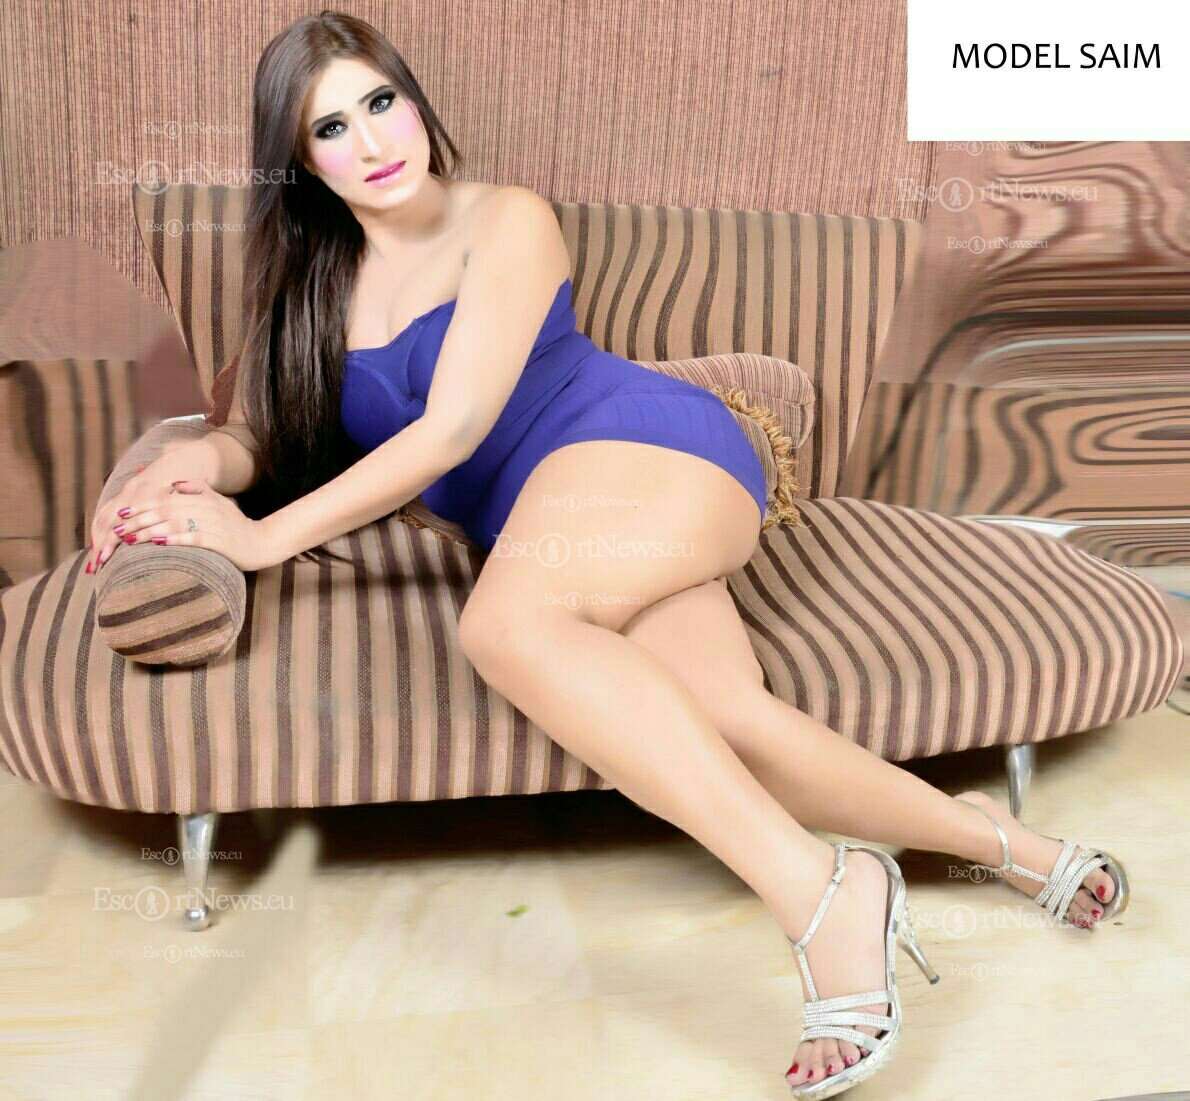 Ajpnia In Agency Available Are Teen Contact Escort Lahore